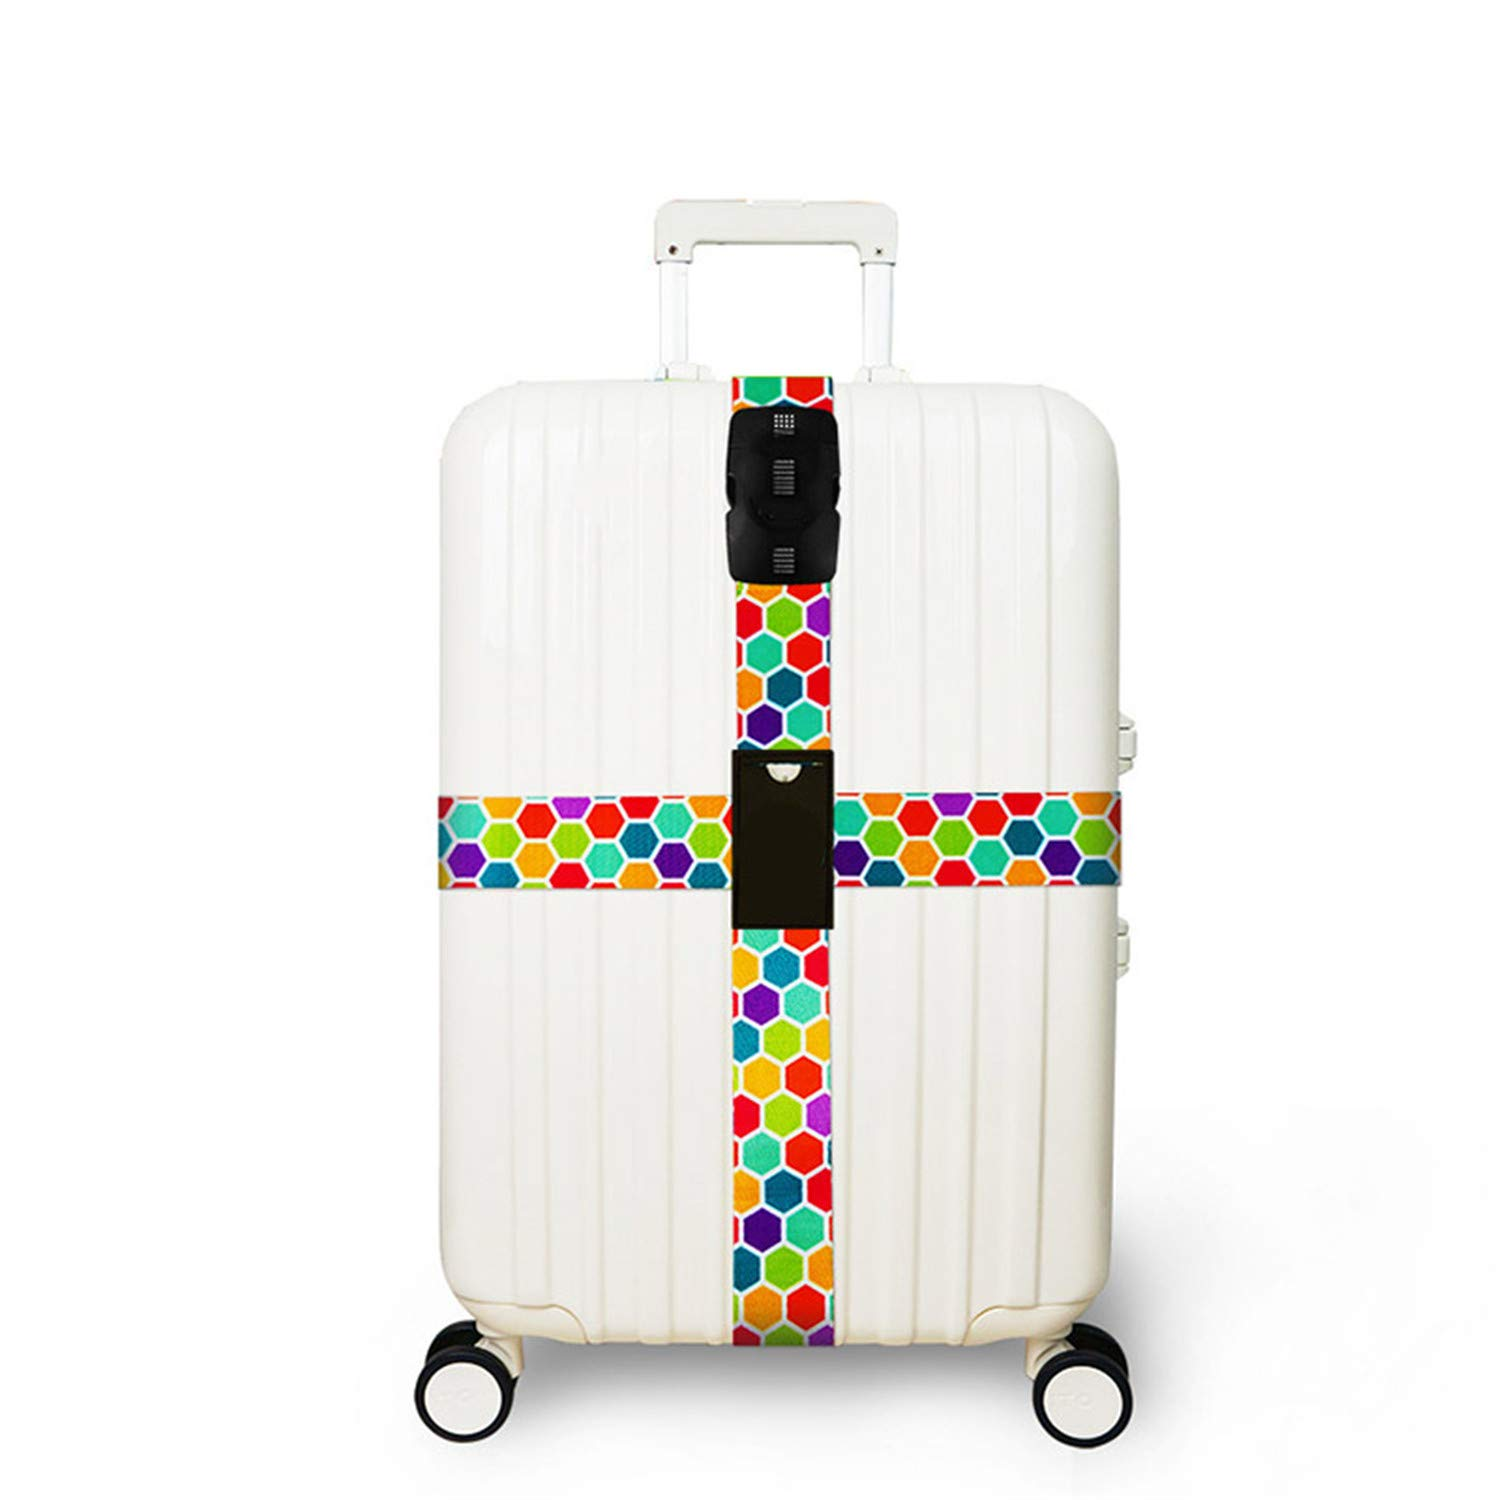 Password Lock Luggage Cross Strap Suitcase Bind Packing Belt Trolley Baggage Polyester Bandage Travel Accessories